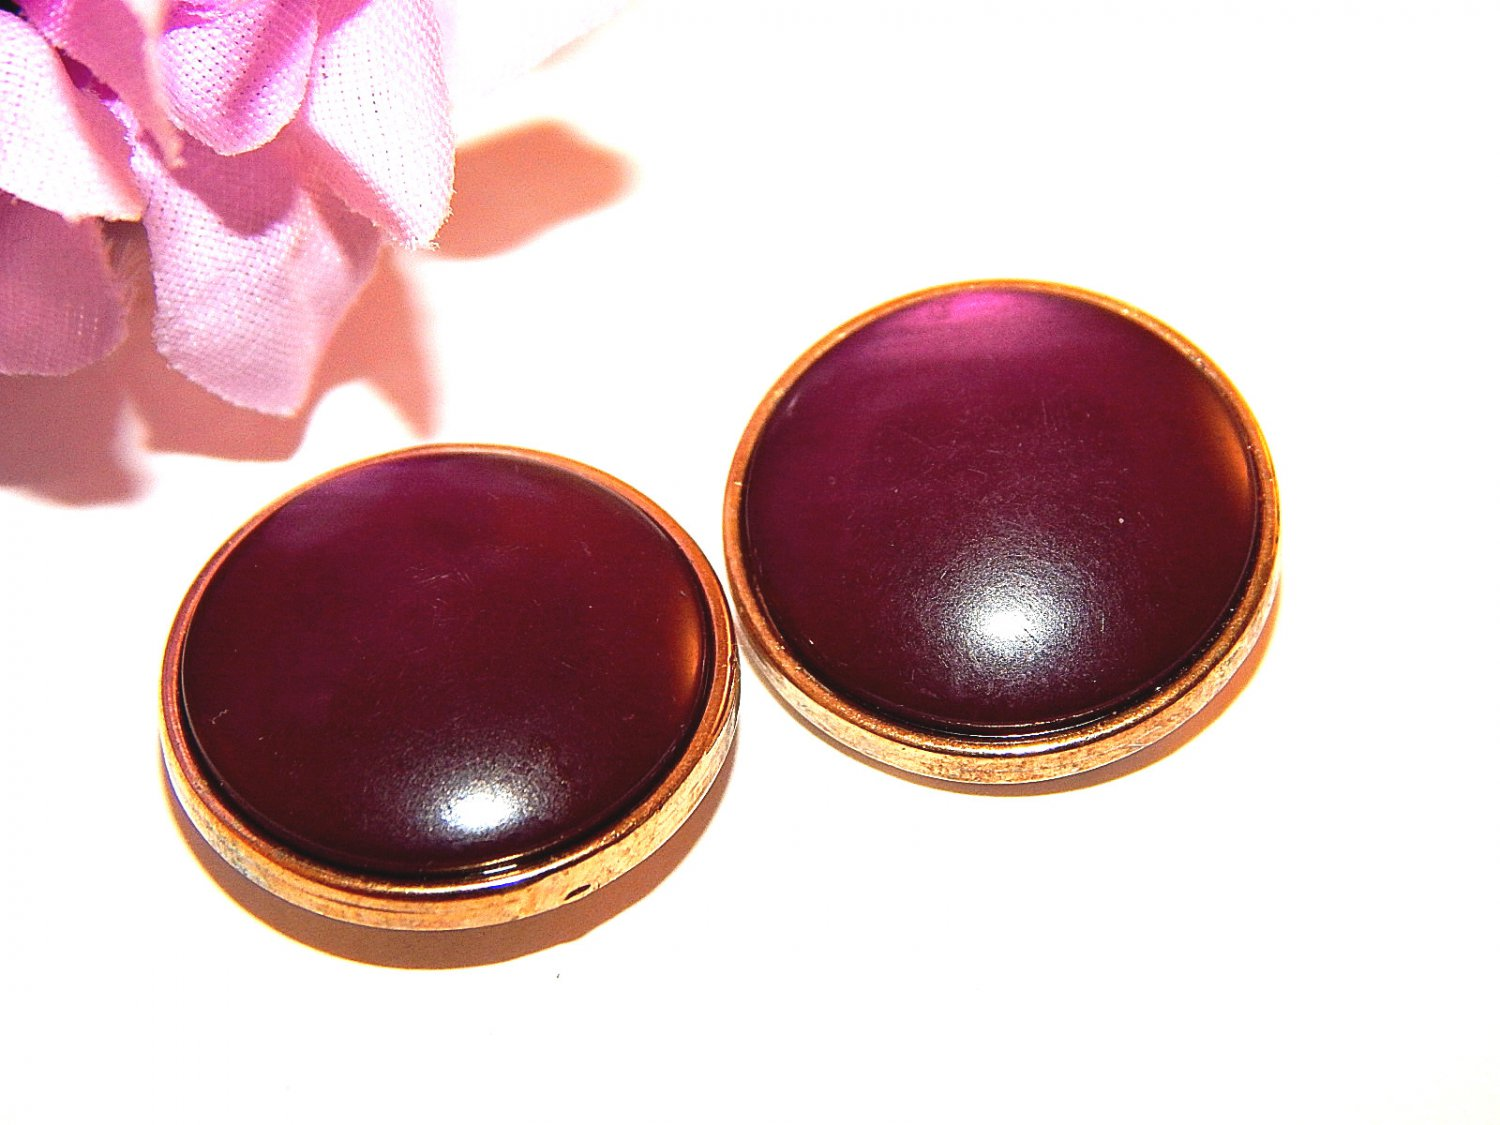 Purple Dot Earrings Gold Metal Framed Cabochon Jewelry Vintage 1970's Fashion for Pierced Ears